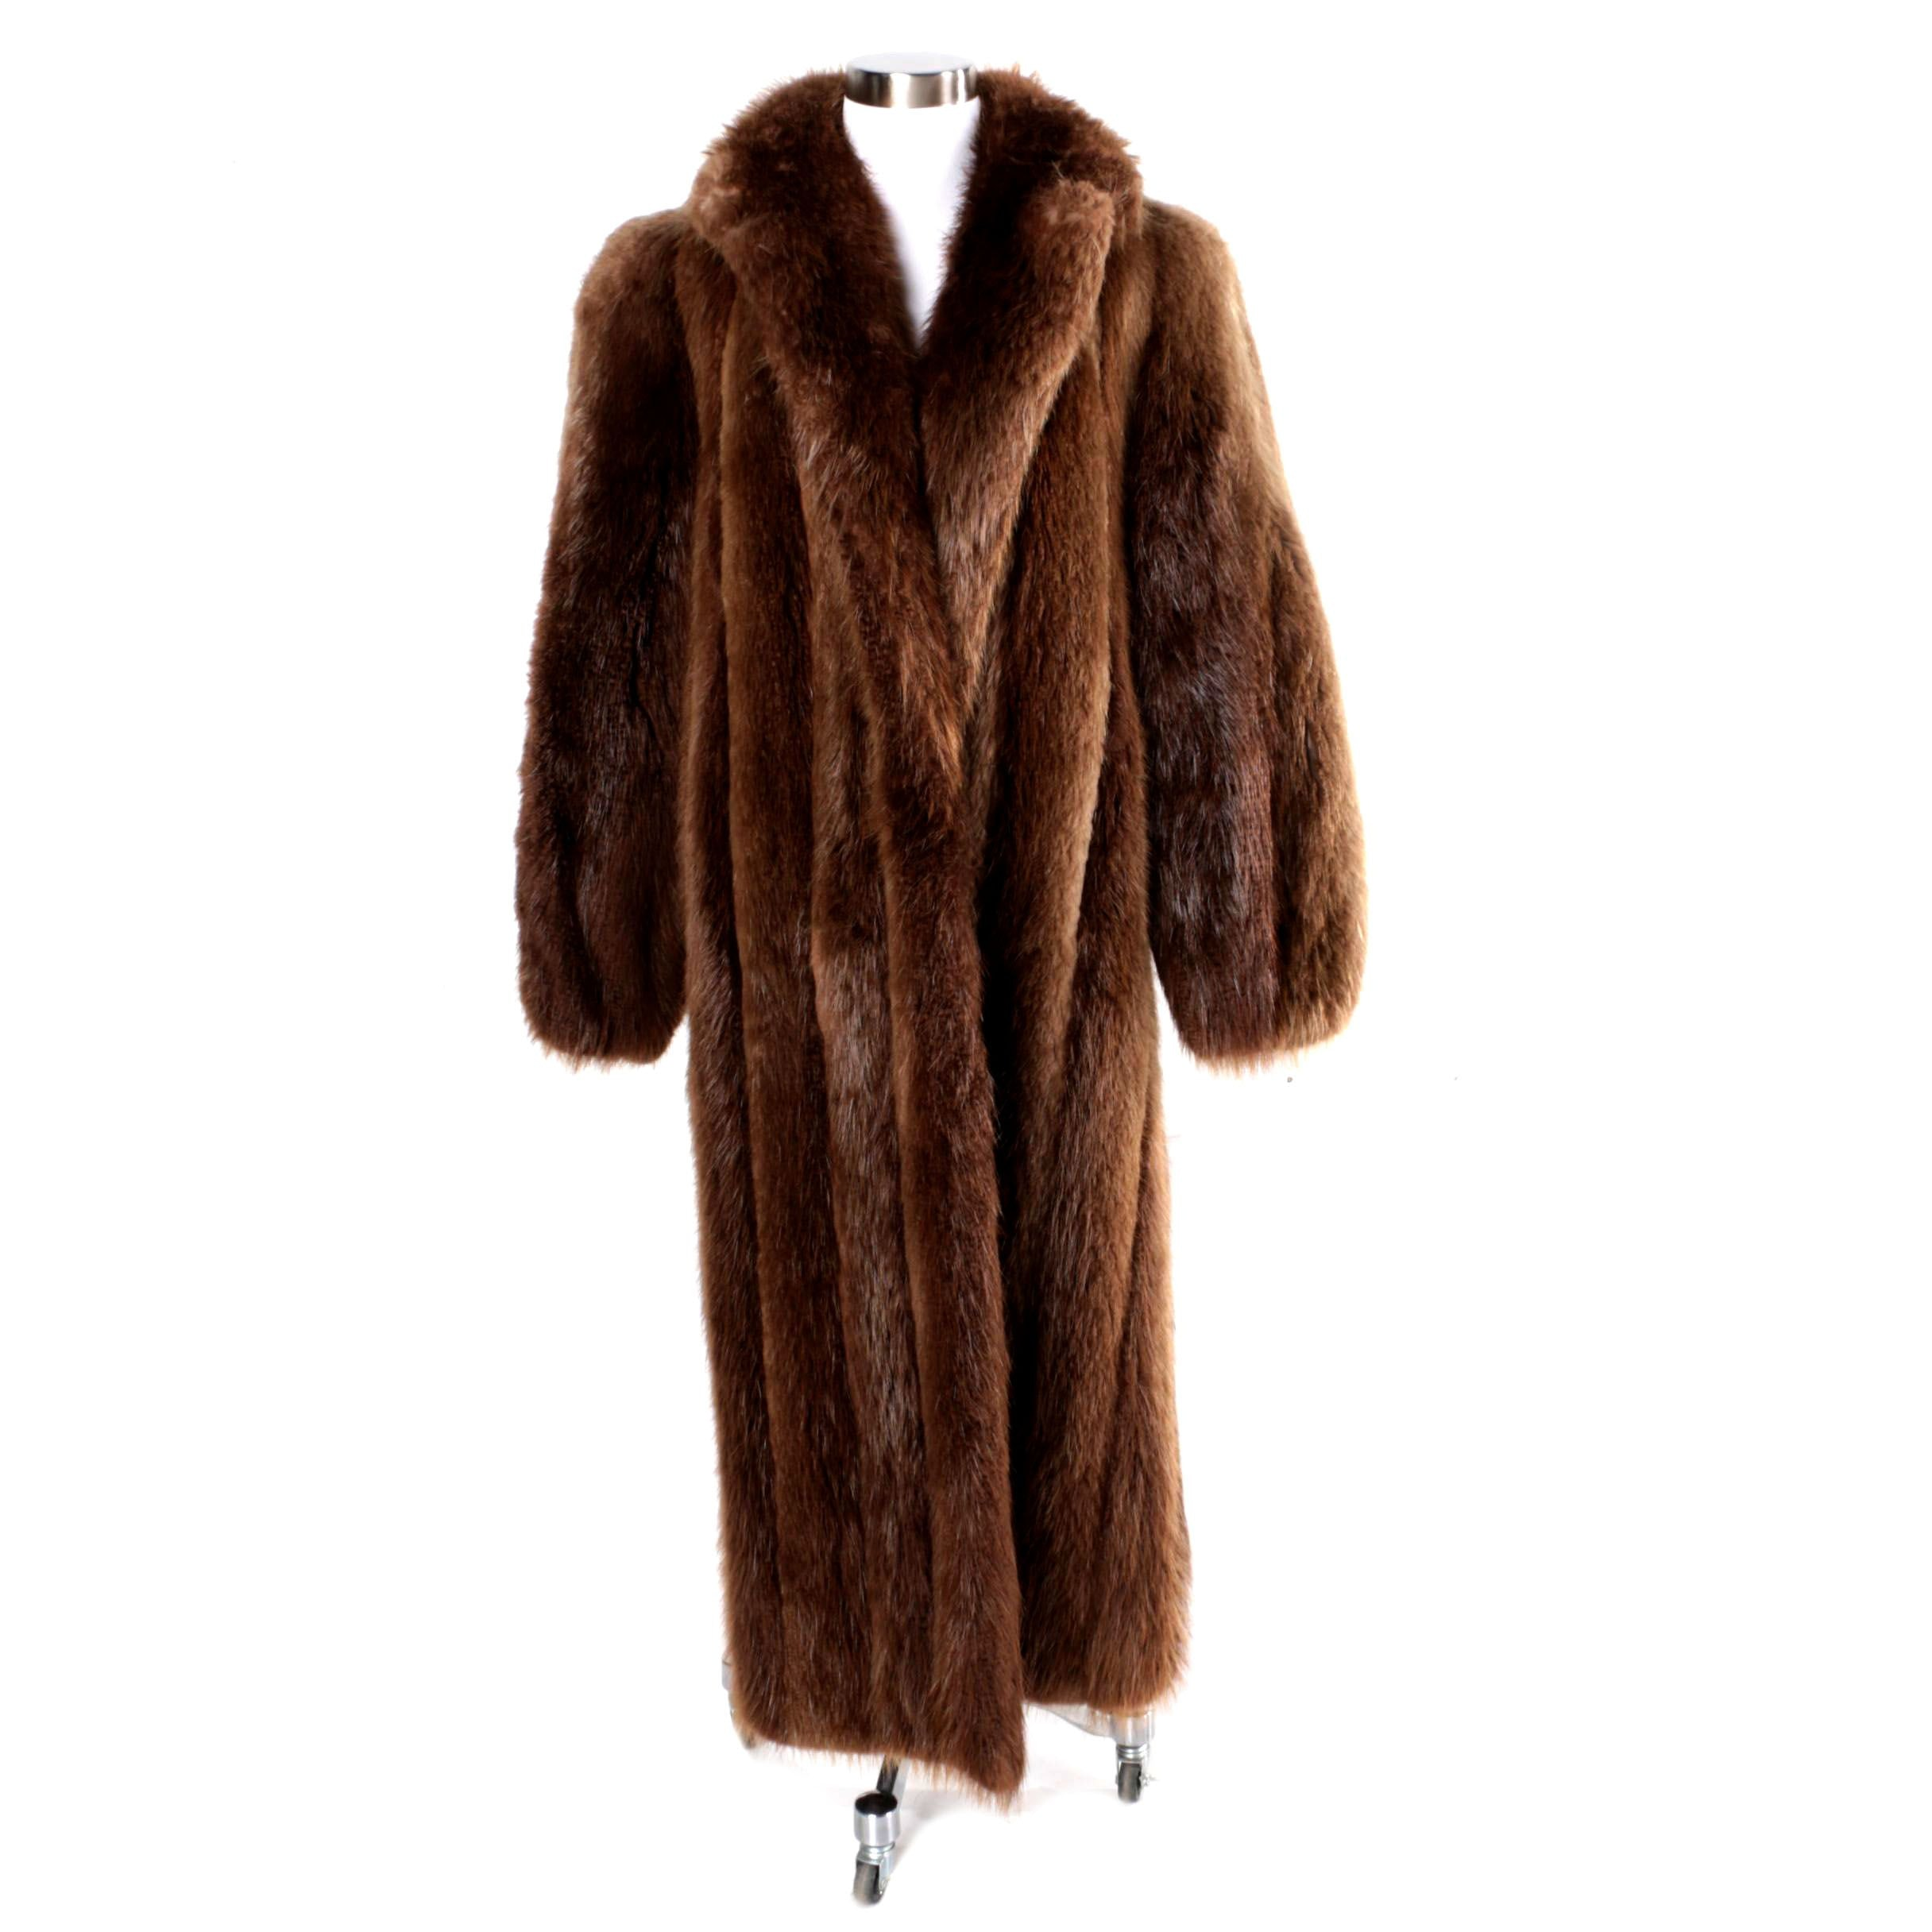 Vintage Beaver Fur Coat by Dittrich